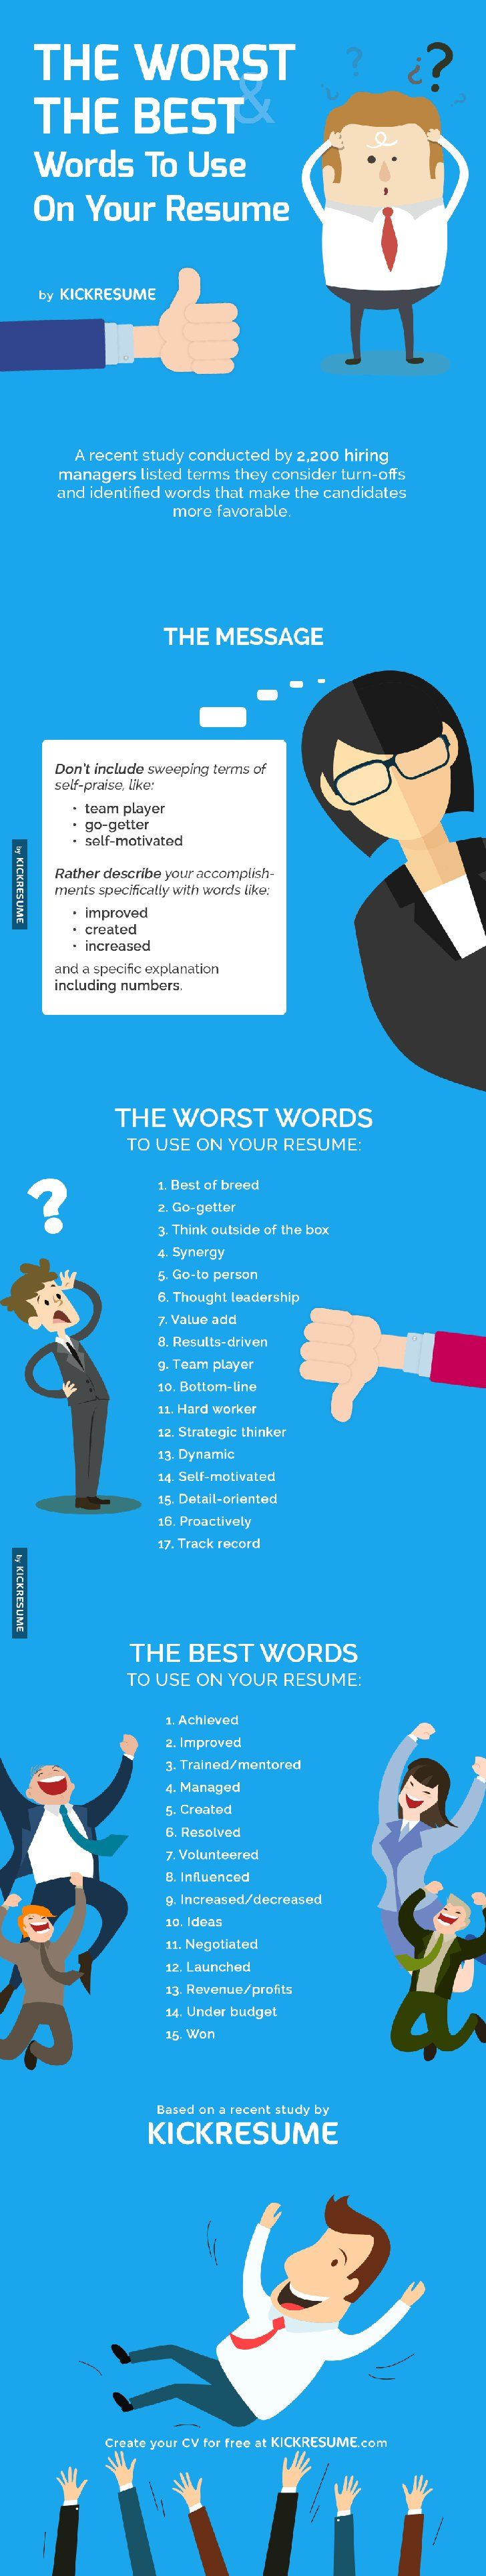 Best Words For Resume 75 Best Resume & Cover Letter Images On Pinterest  Interview .